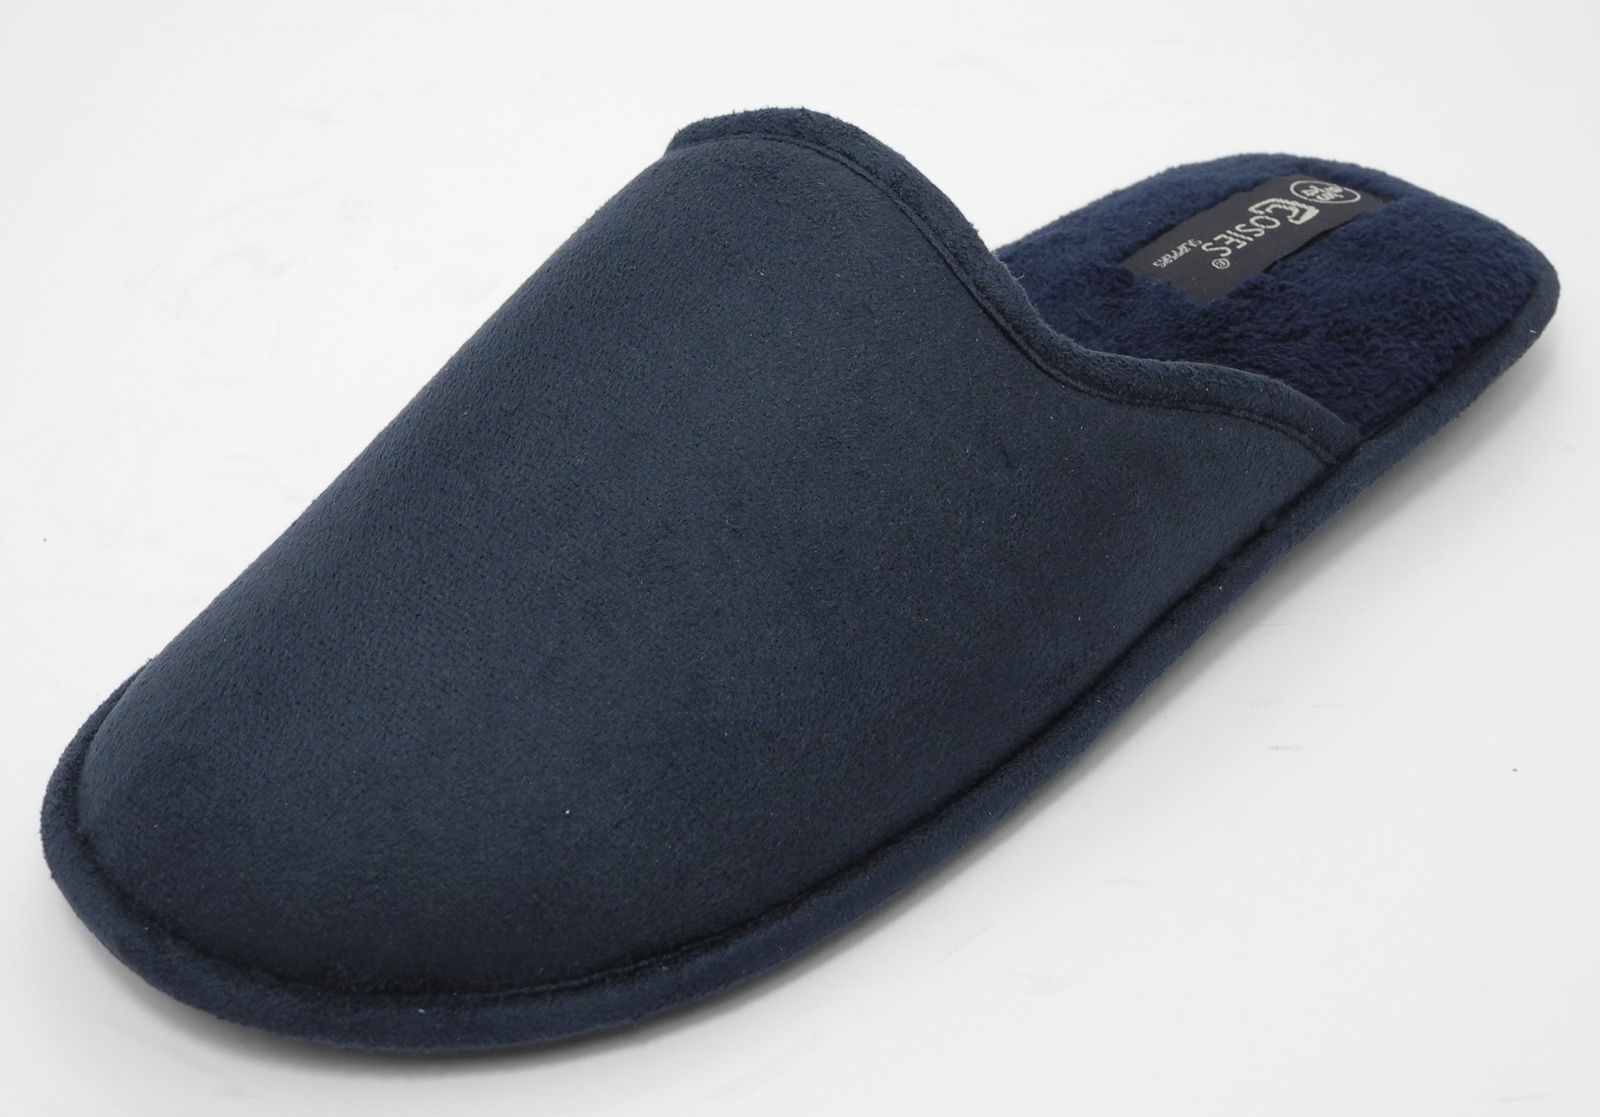 Mens-COSIES-Micro-Suede-Mules-Mule-Slippers-BLACK-BLUE-Size-6-7-8-9-10-11